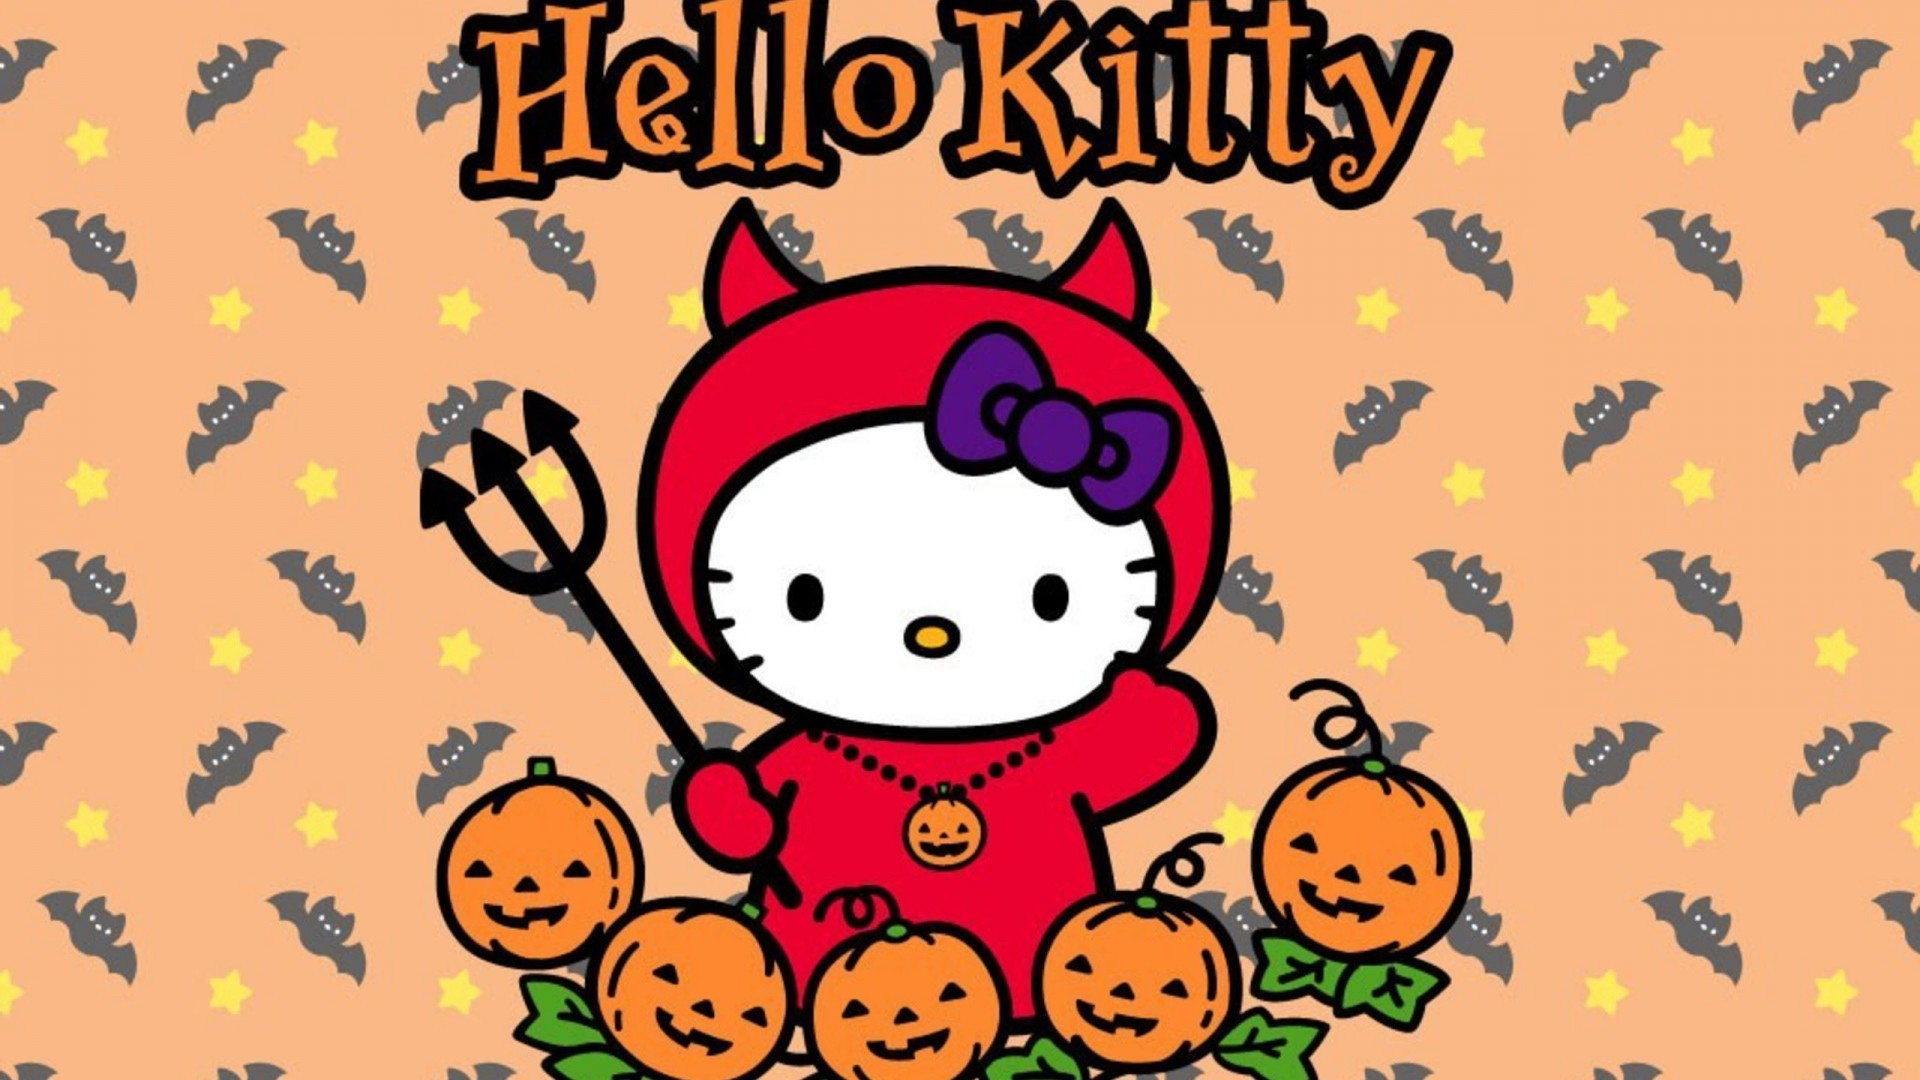 1920x1080 Hello Kitty Halloween Wallpaper Download Free.